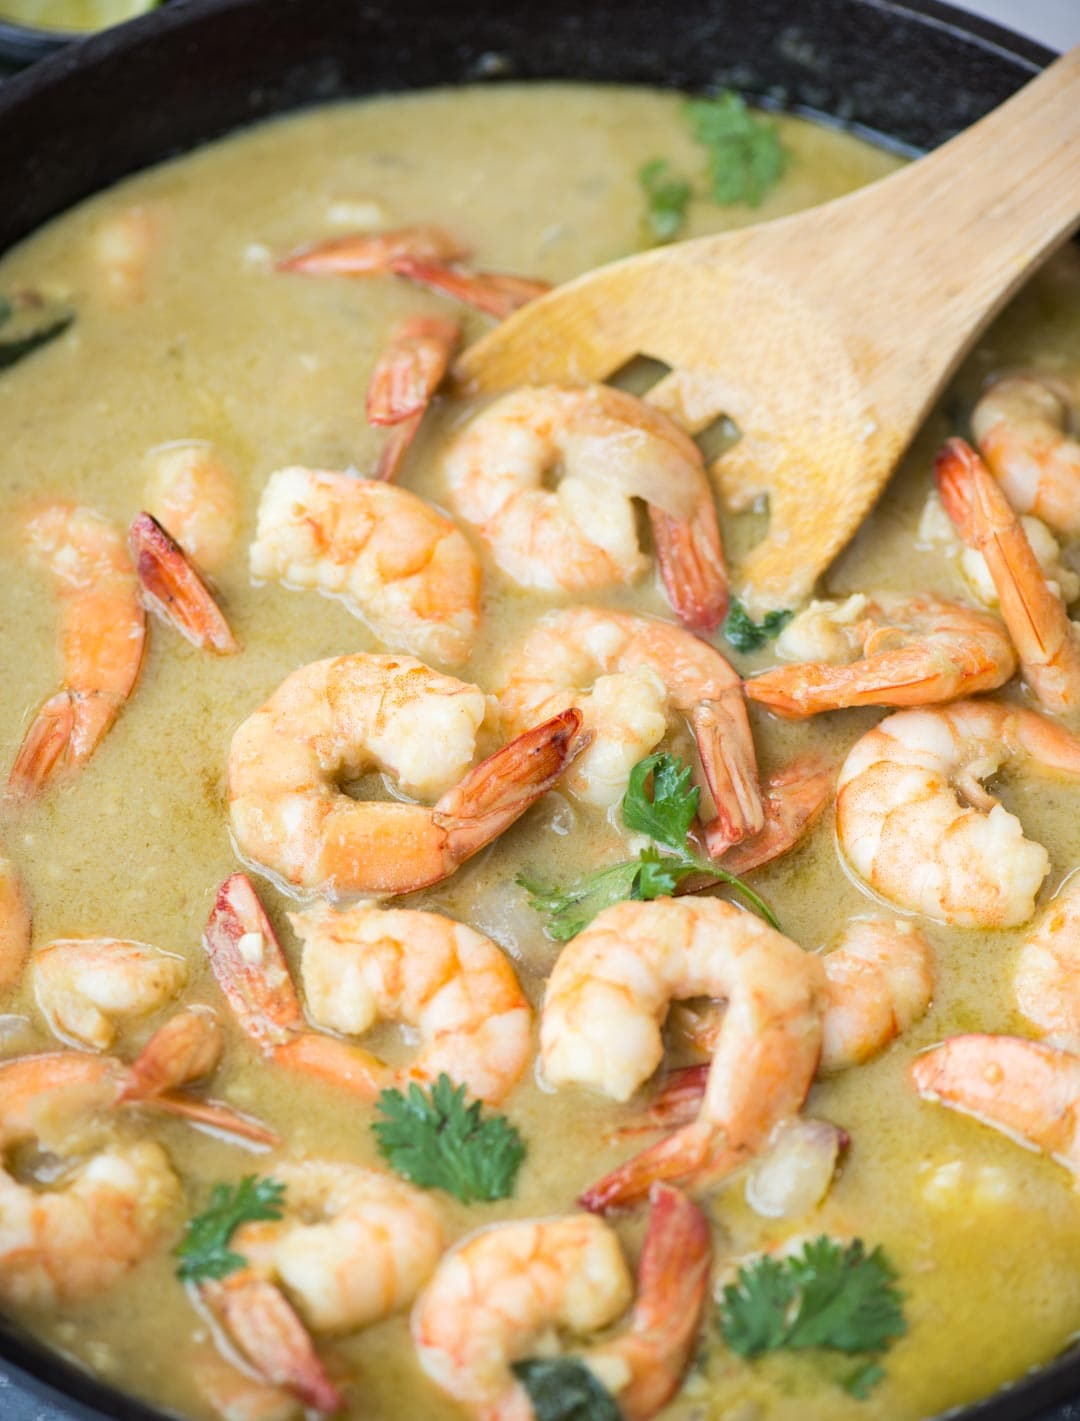 Delicious Shrimp Curry simmered in Thai Green green curry paste and creamy coconut milk takes less than 20 minutes to make.